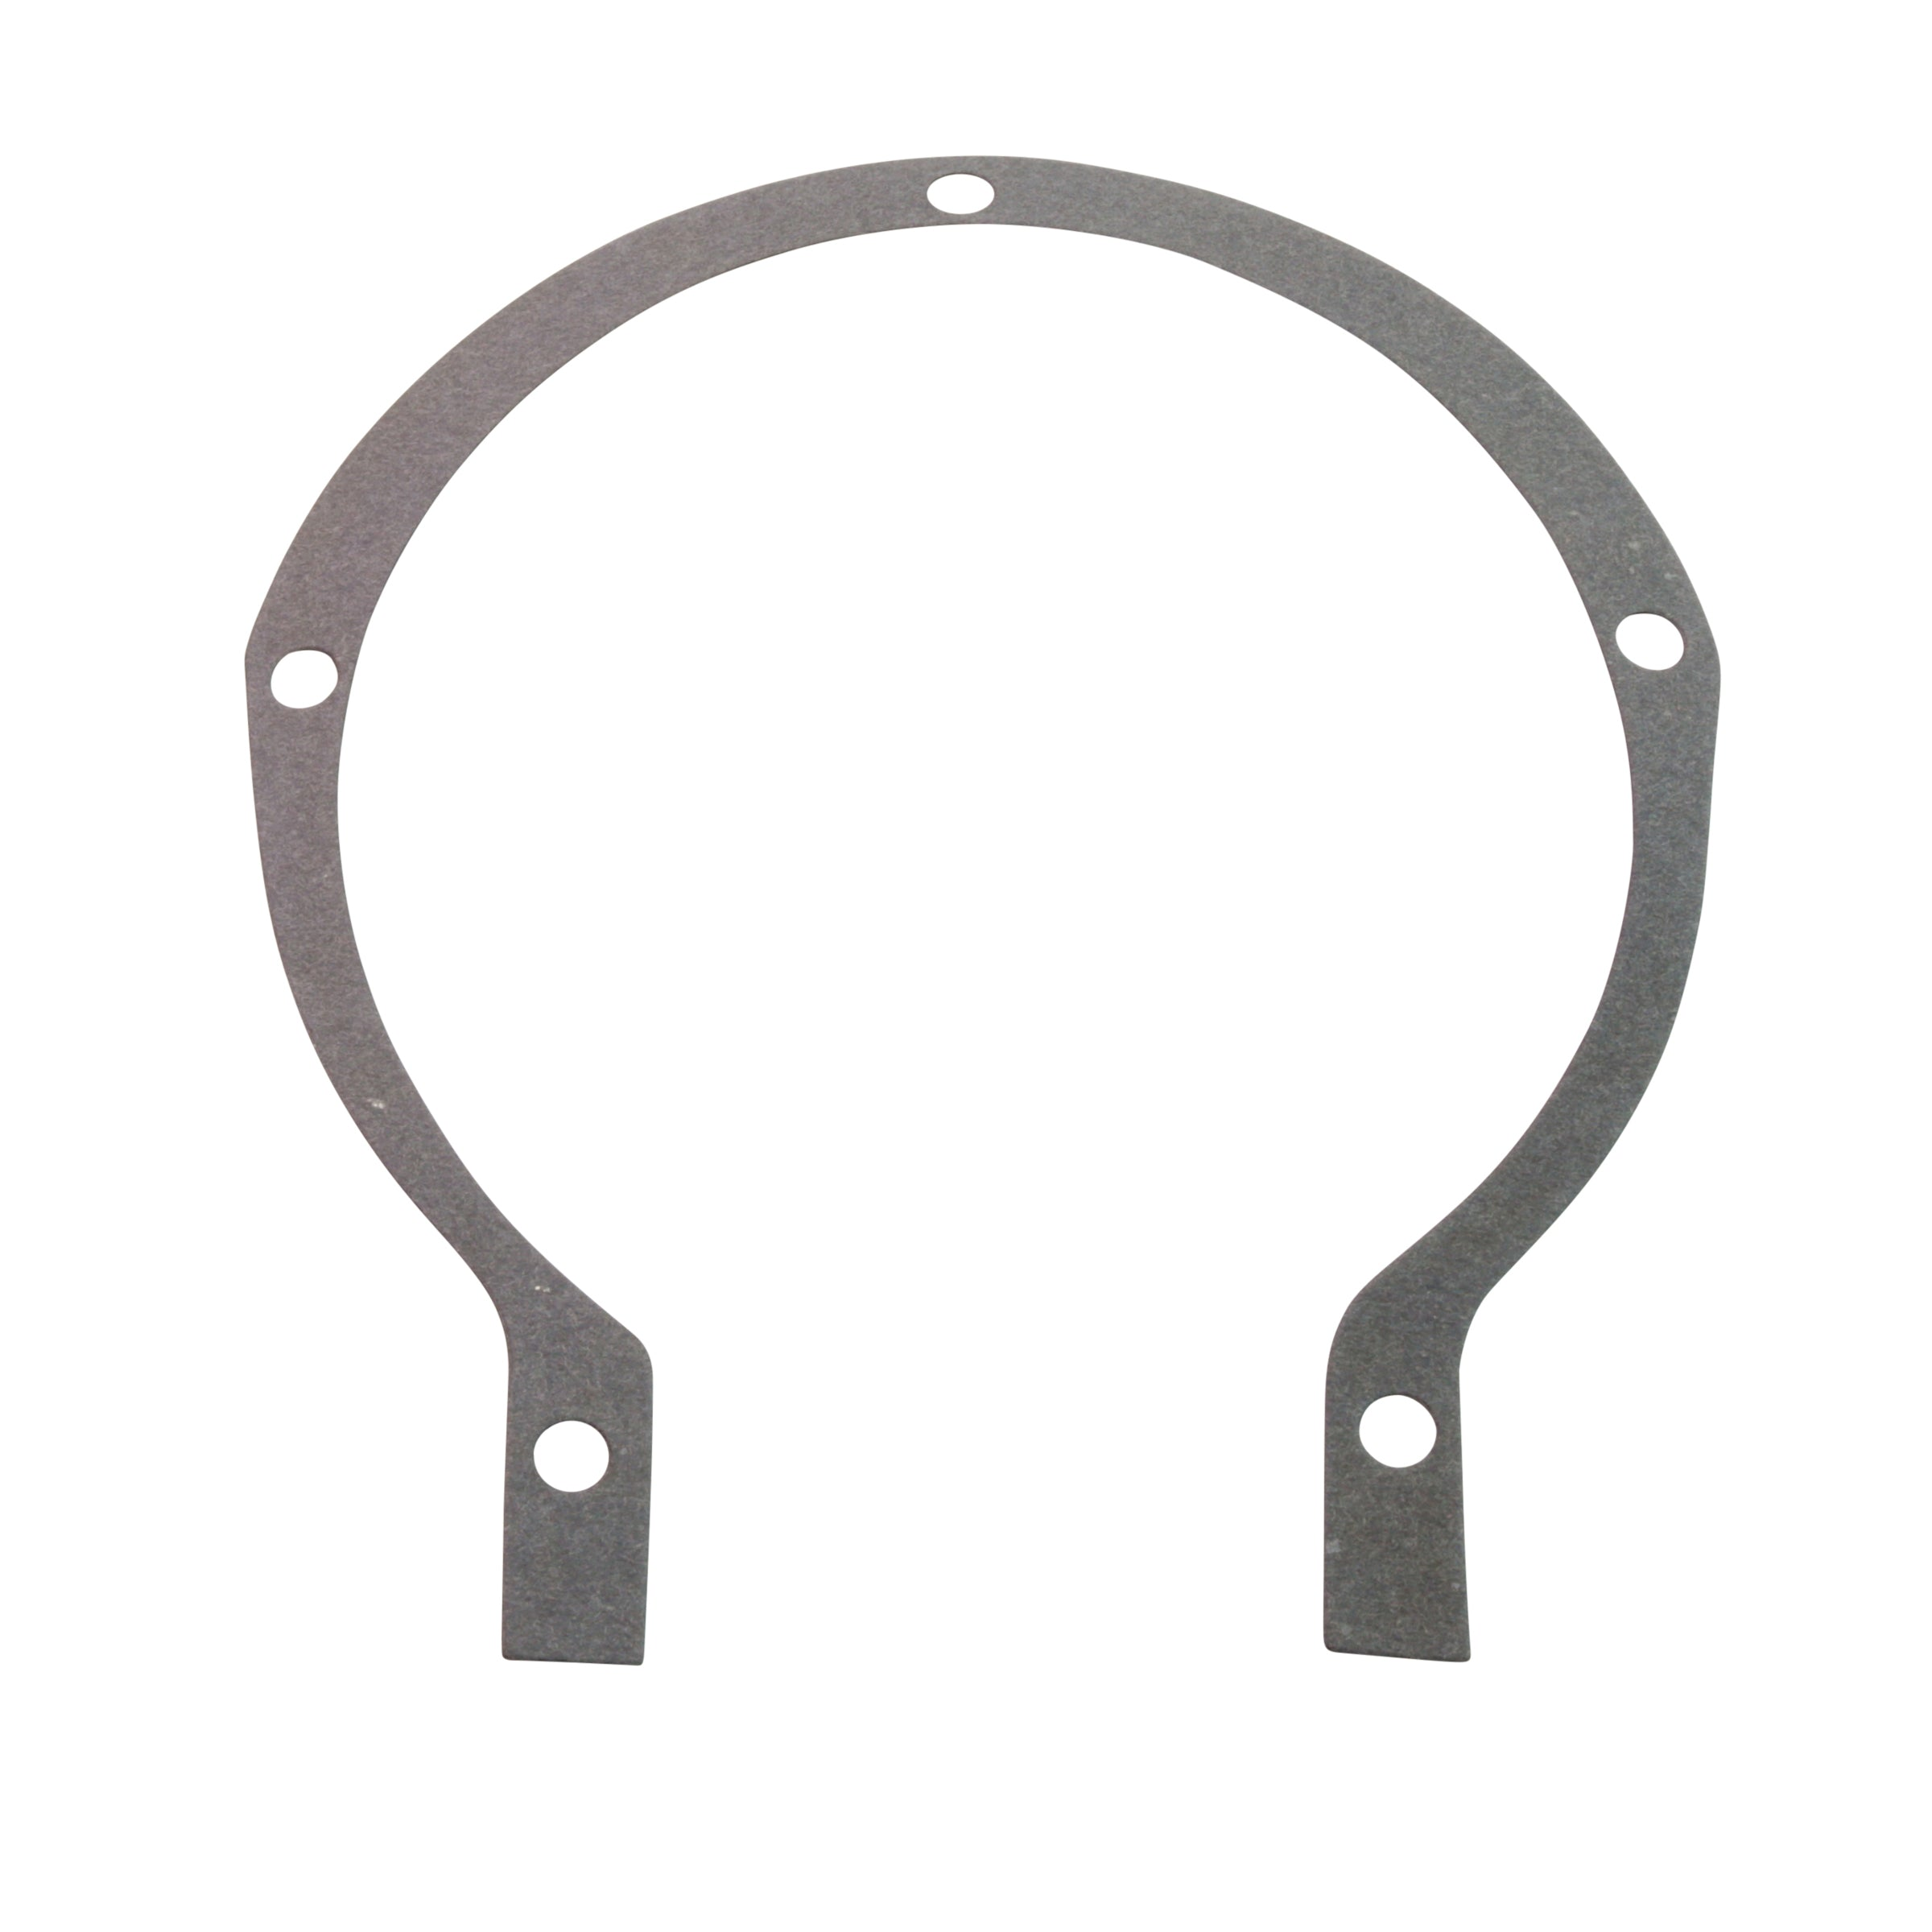 Timing Cover Gasket • 1949-53 Ford